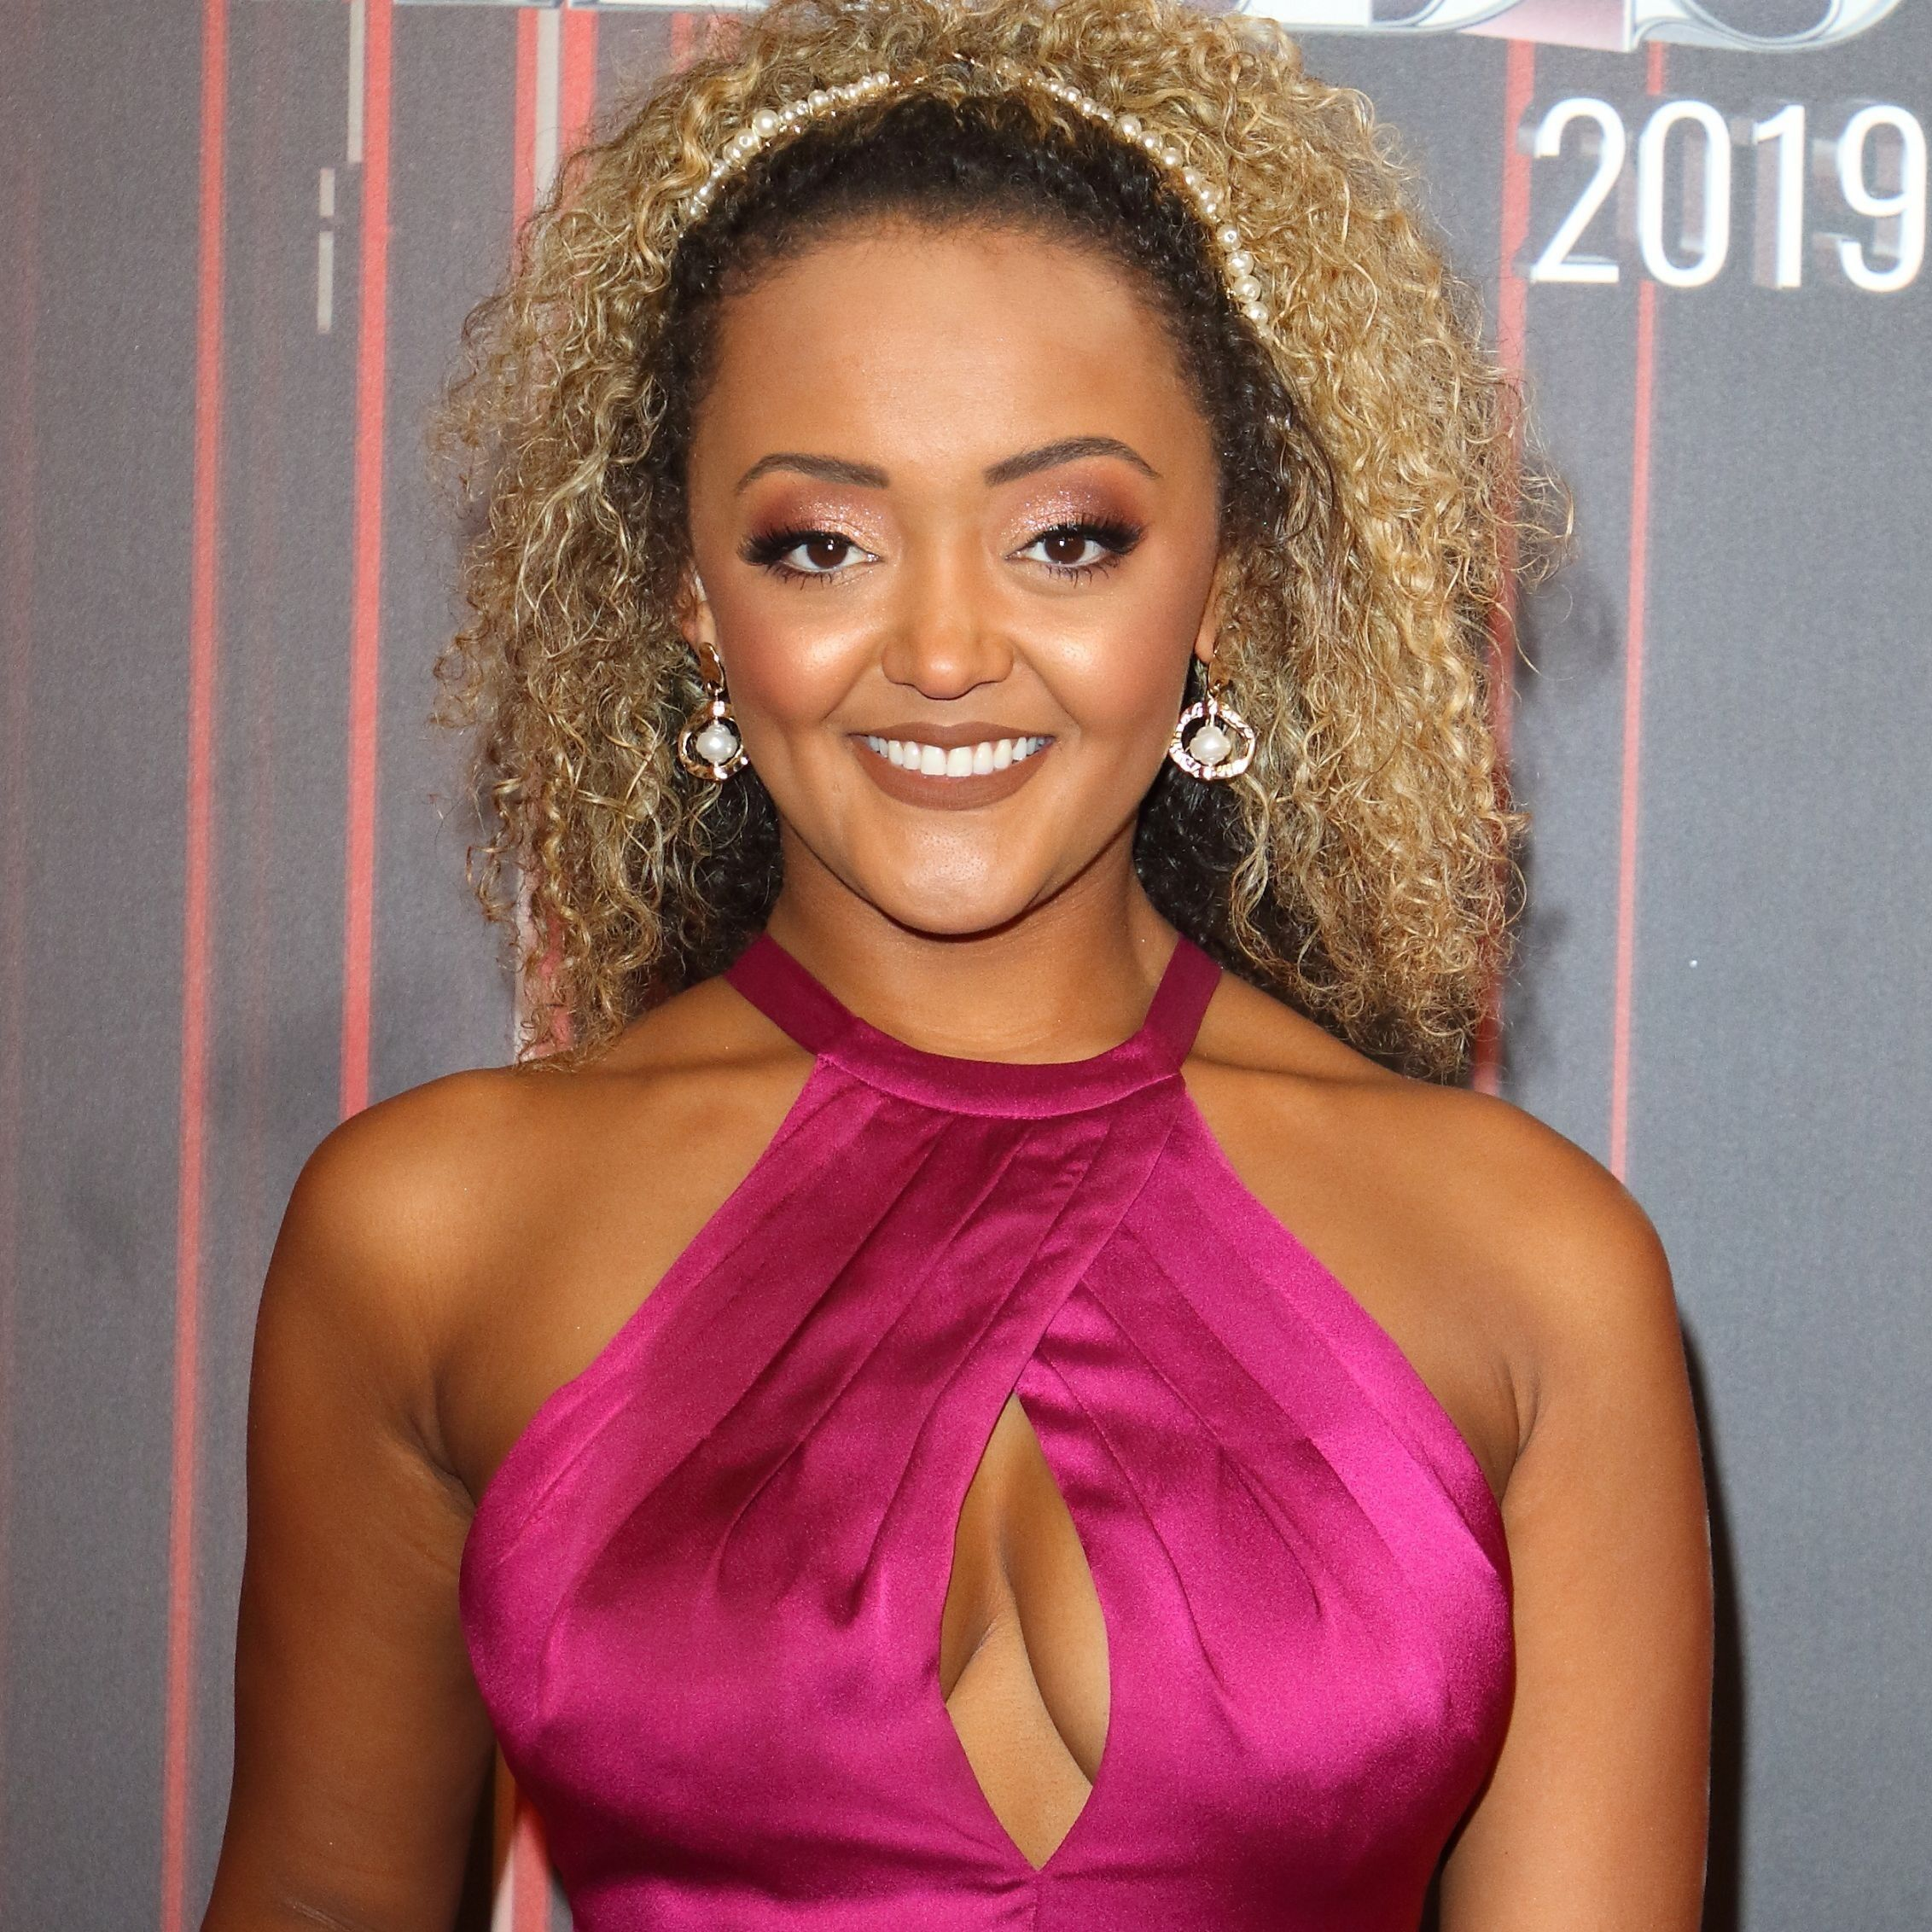 Coronation Street star Alexandra Mardell reveals a hole was found in her heart after medical test